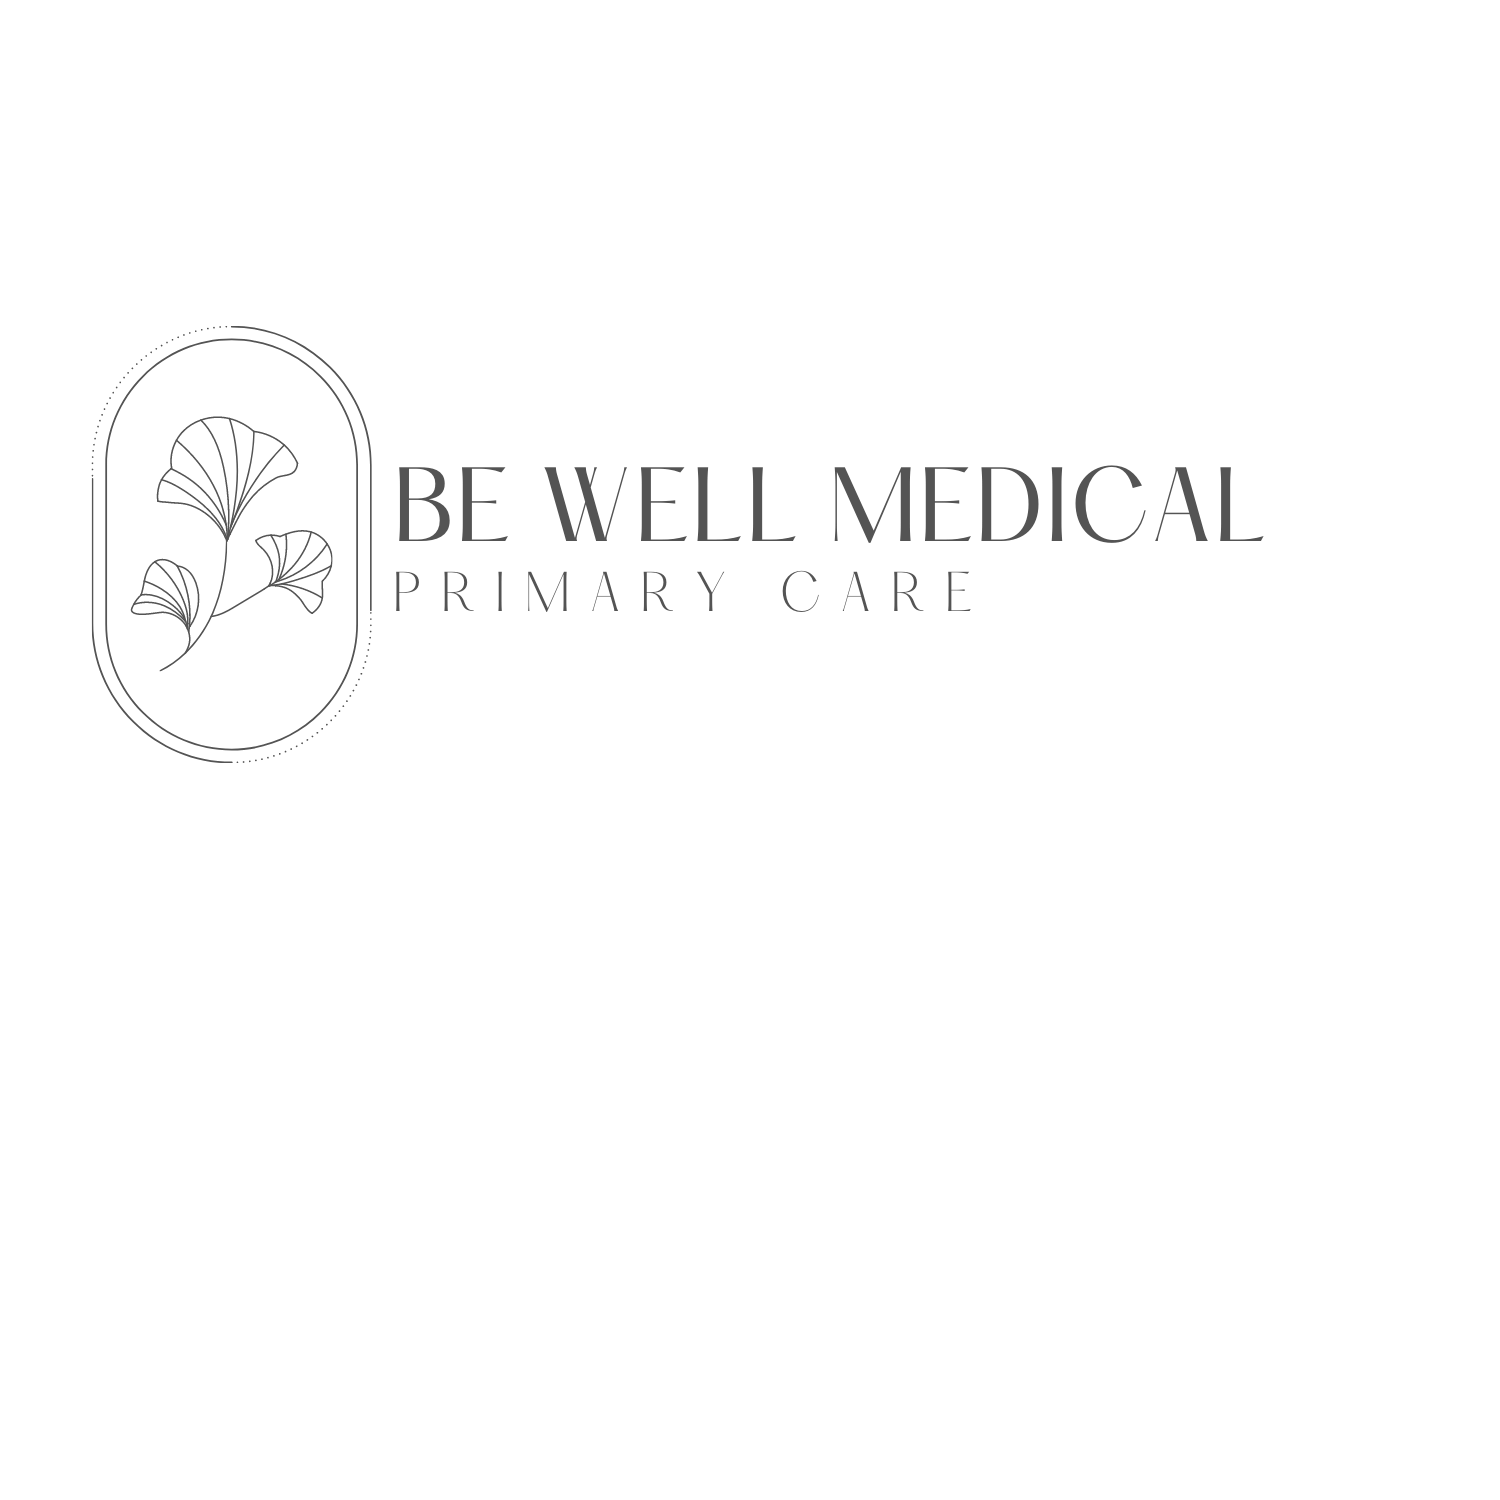 Be Well Medical Primary Care